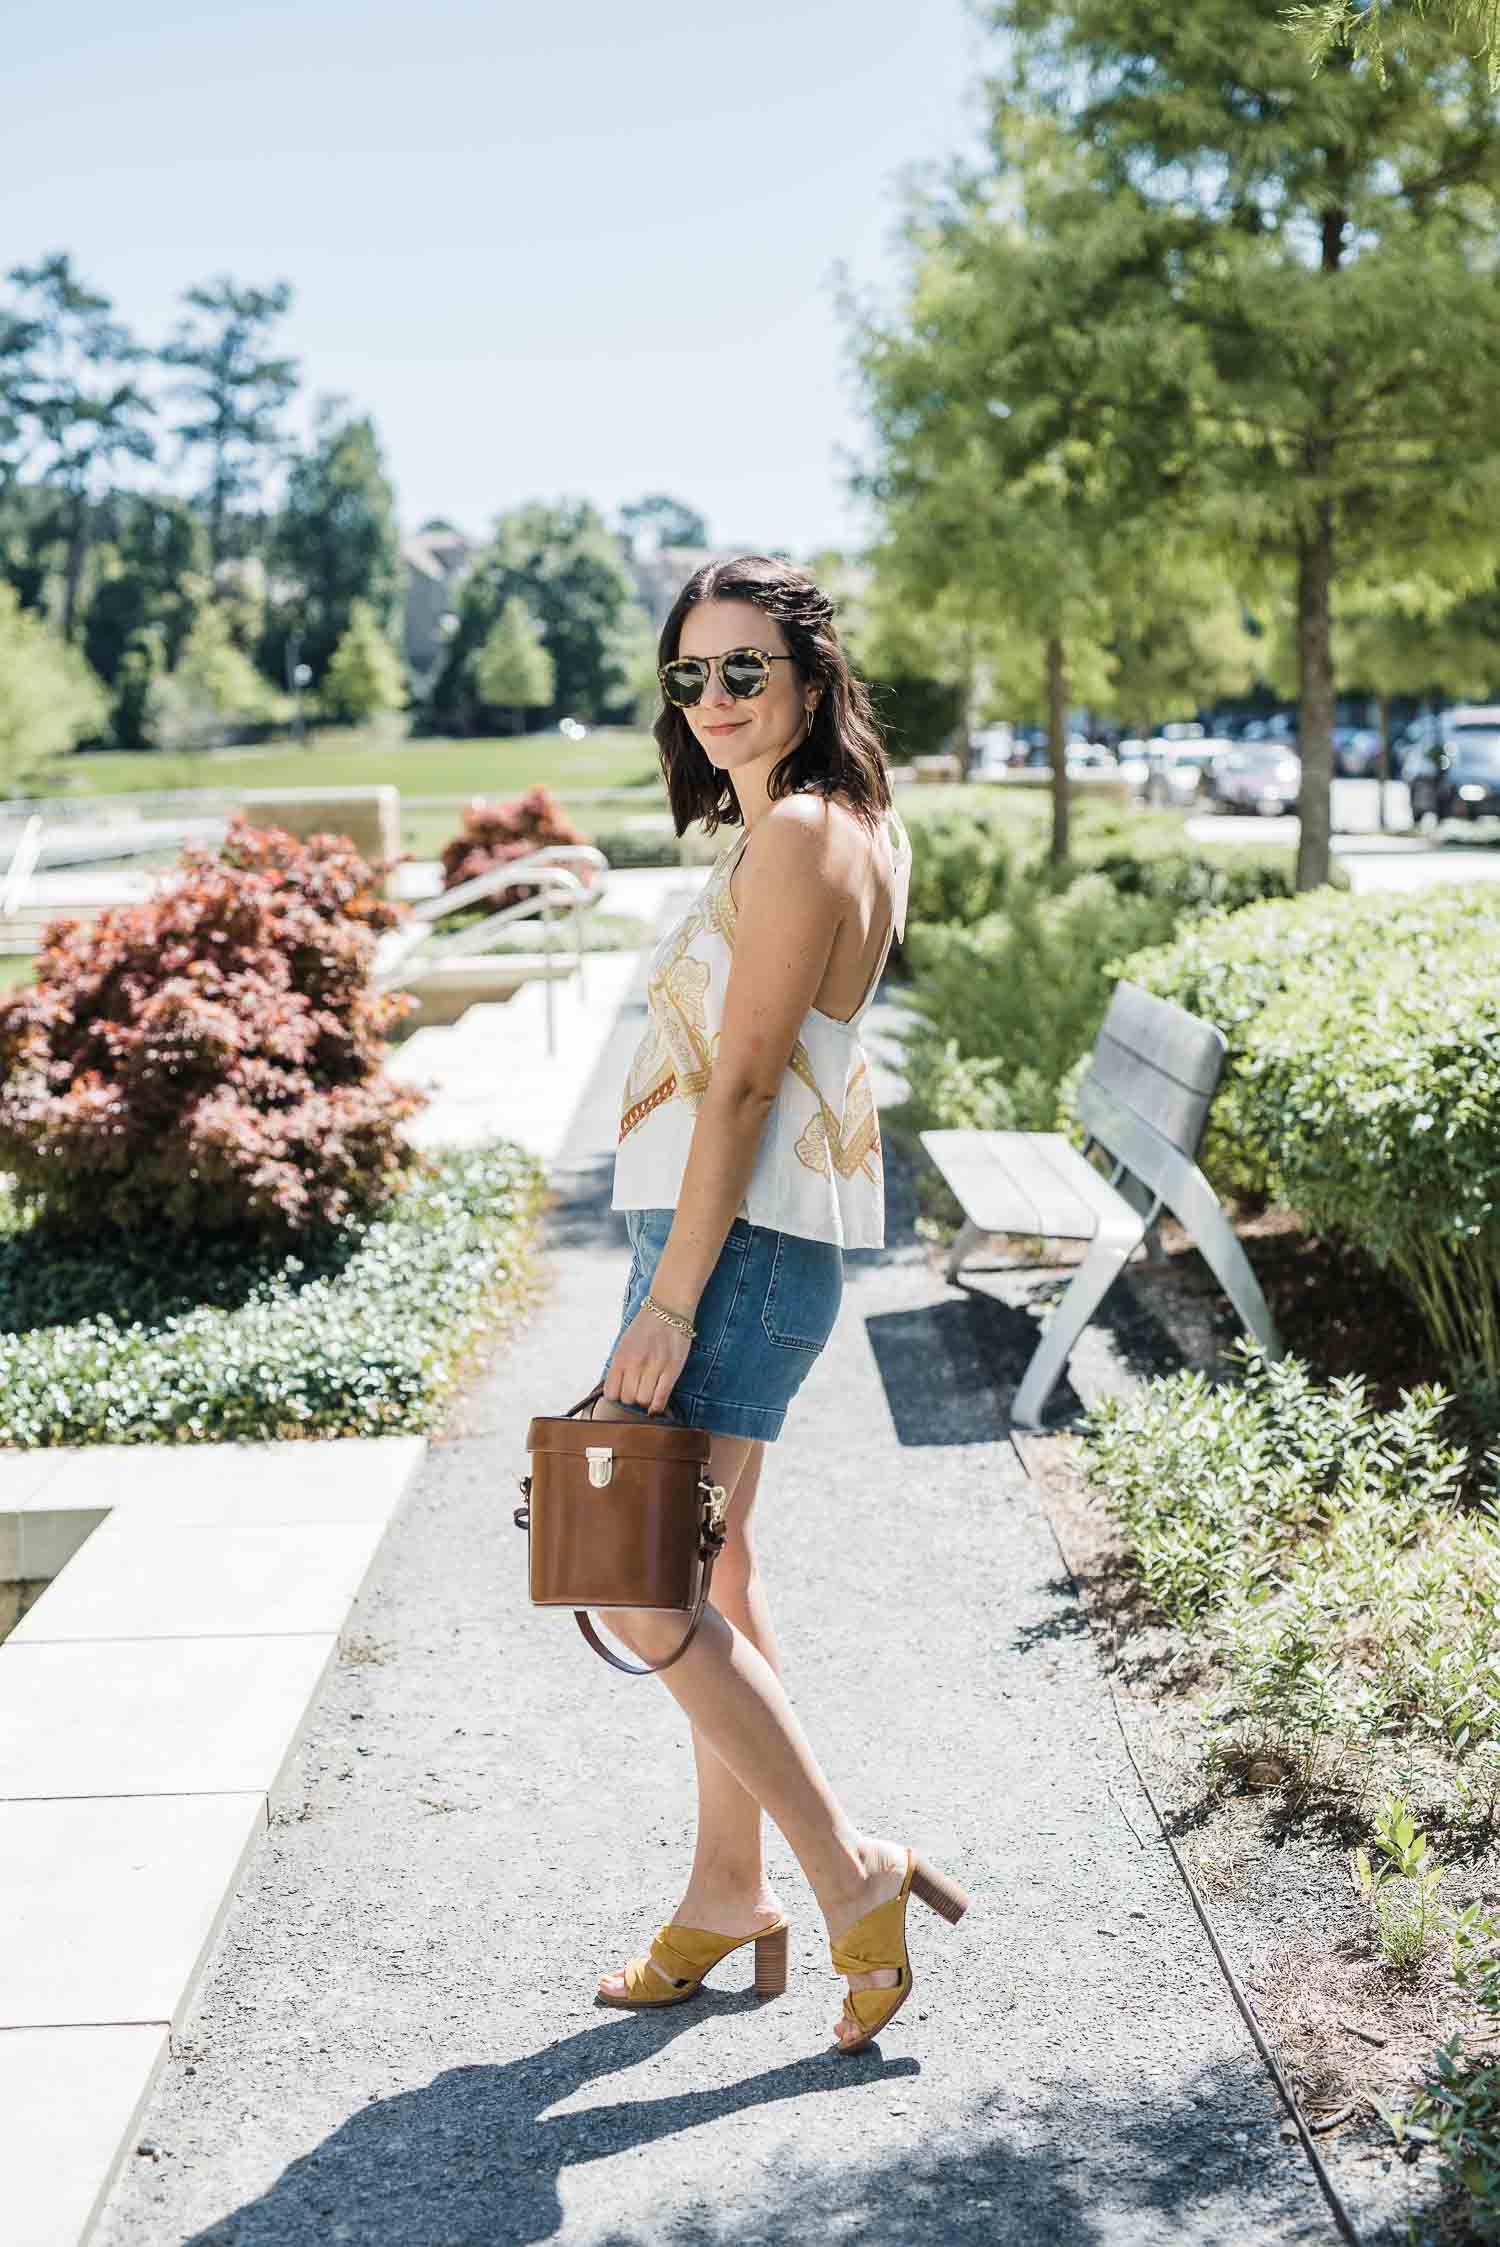 OUTFIT DETAILS: FREE PEOPLE CABANA TOP • MADEWELL CHASE SHORTS • MADEWELL GESINE MULES • BRAHMIN BAG • KAREN WALKER SUNGLASSES • SHEIN HAIR CLIPS